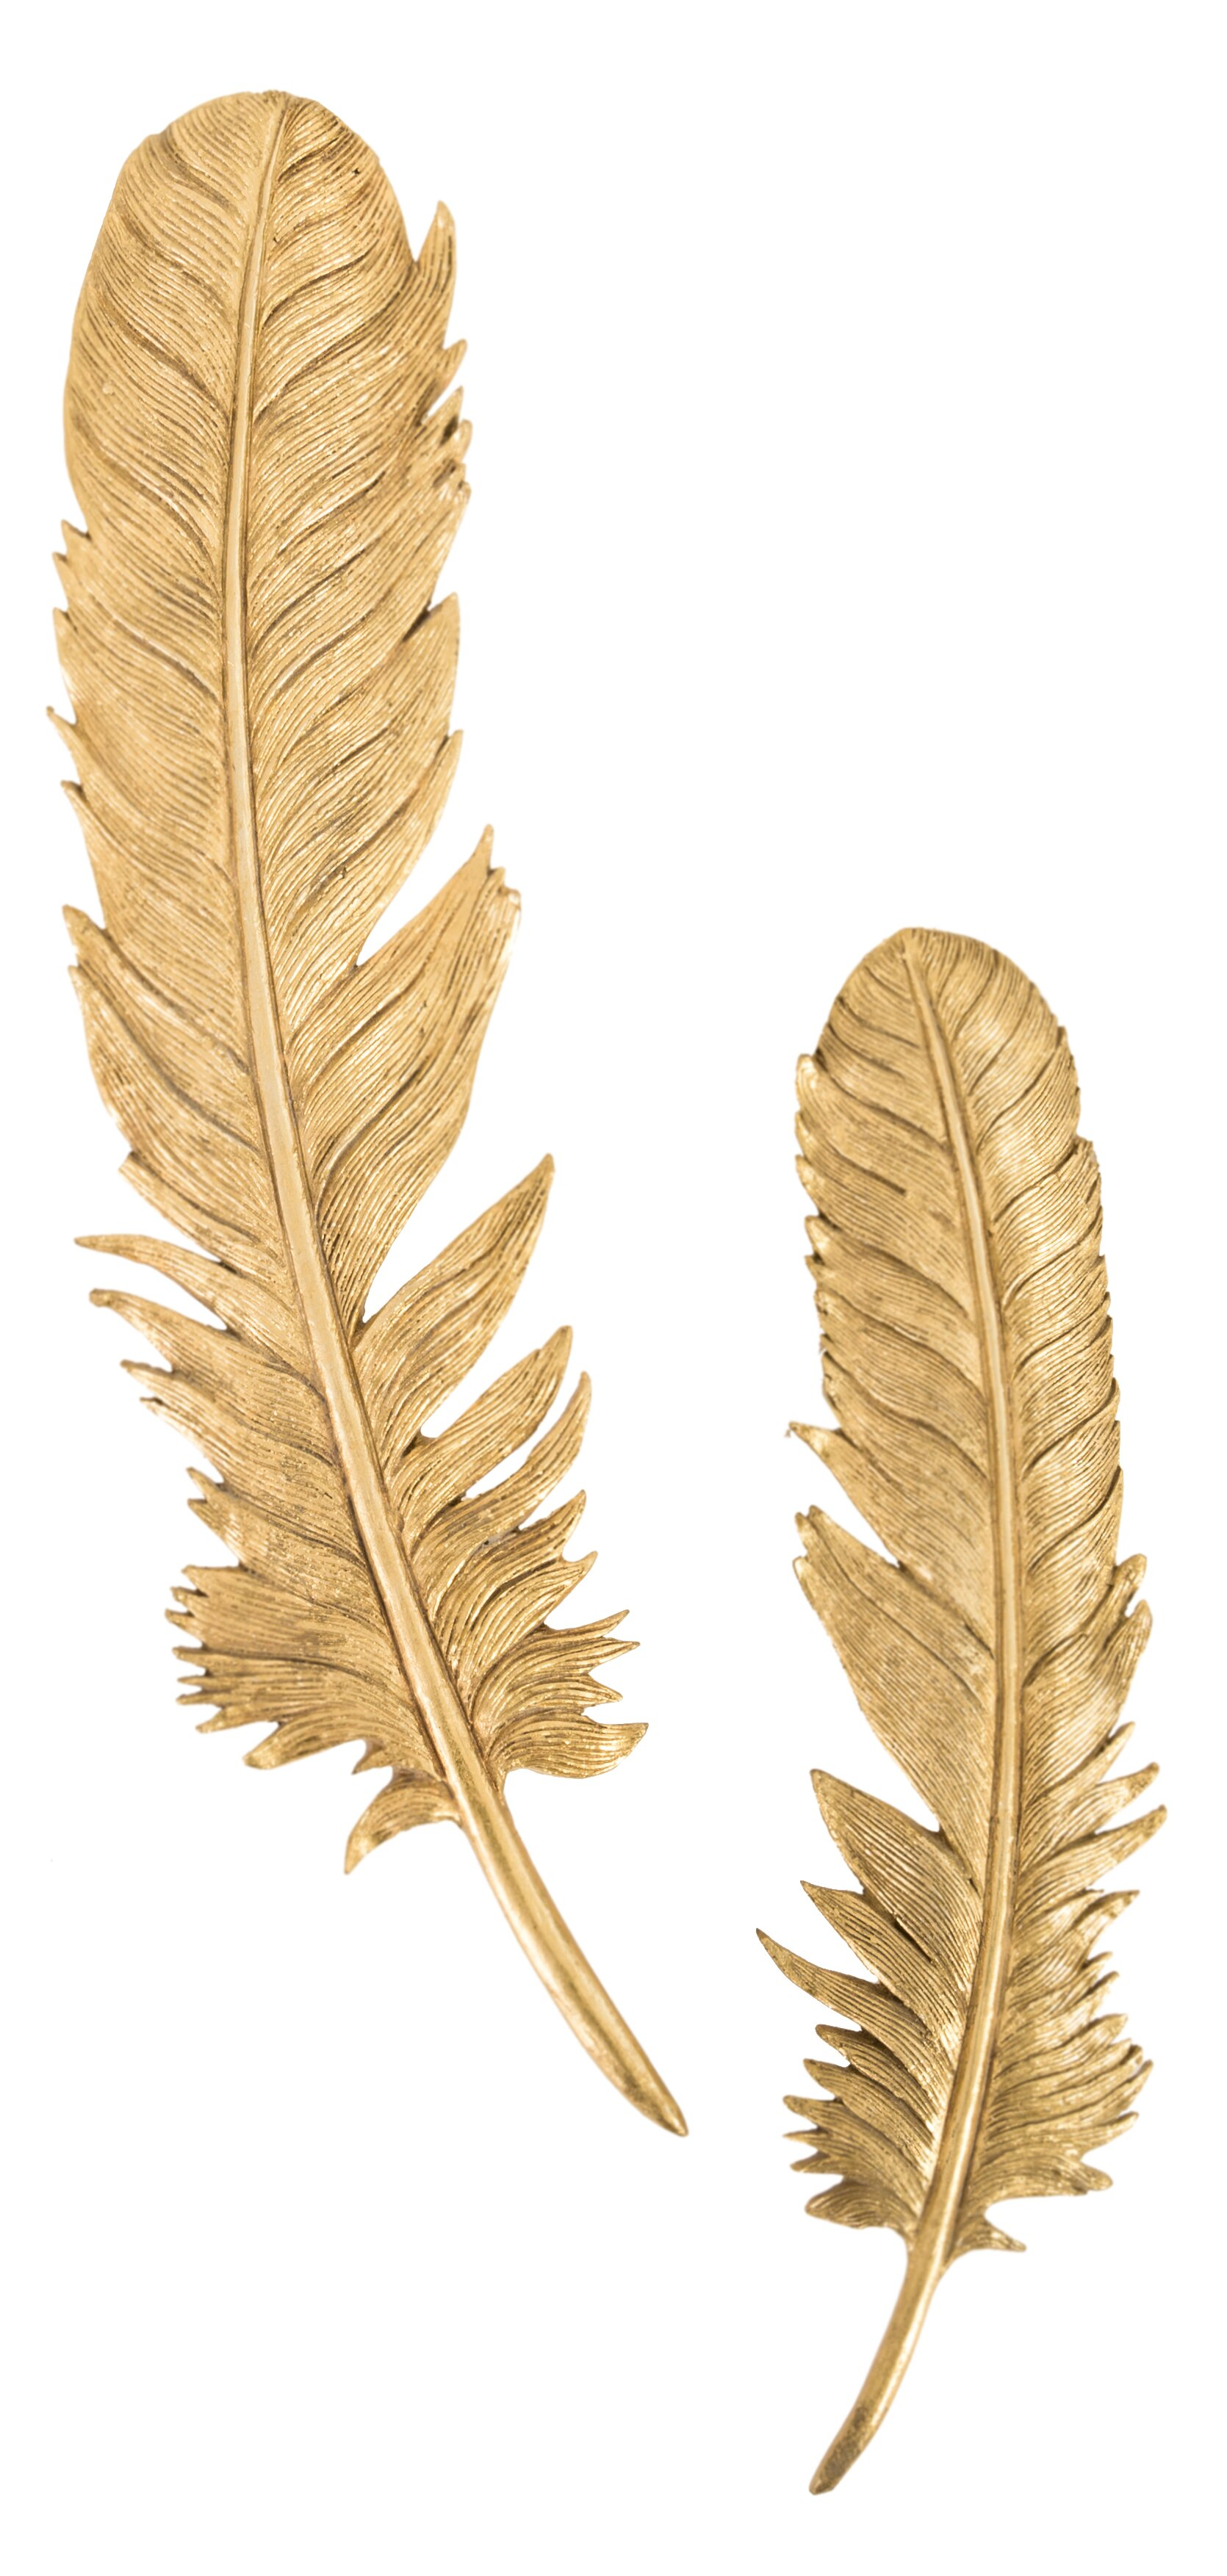 Phillips Collection 2 Piece Feathers Leaf Resin Wall Decor Set | Wayfair